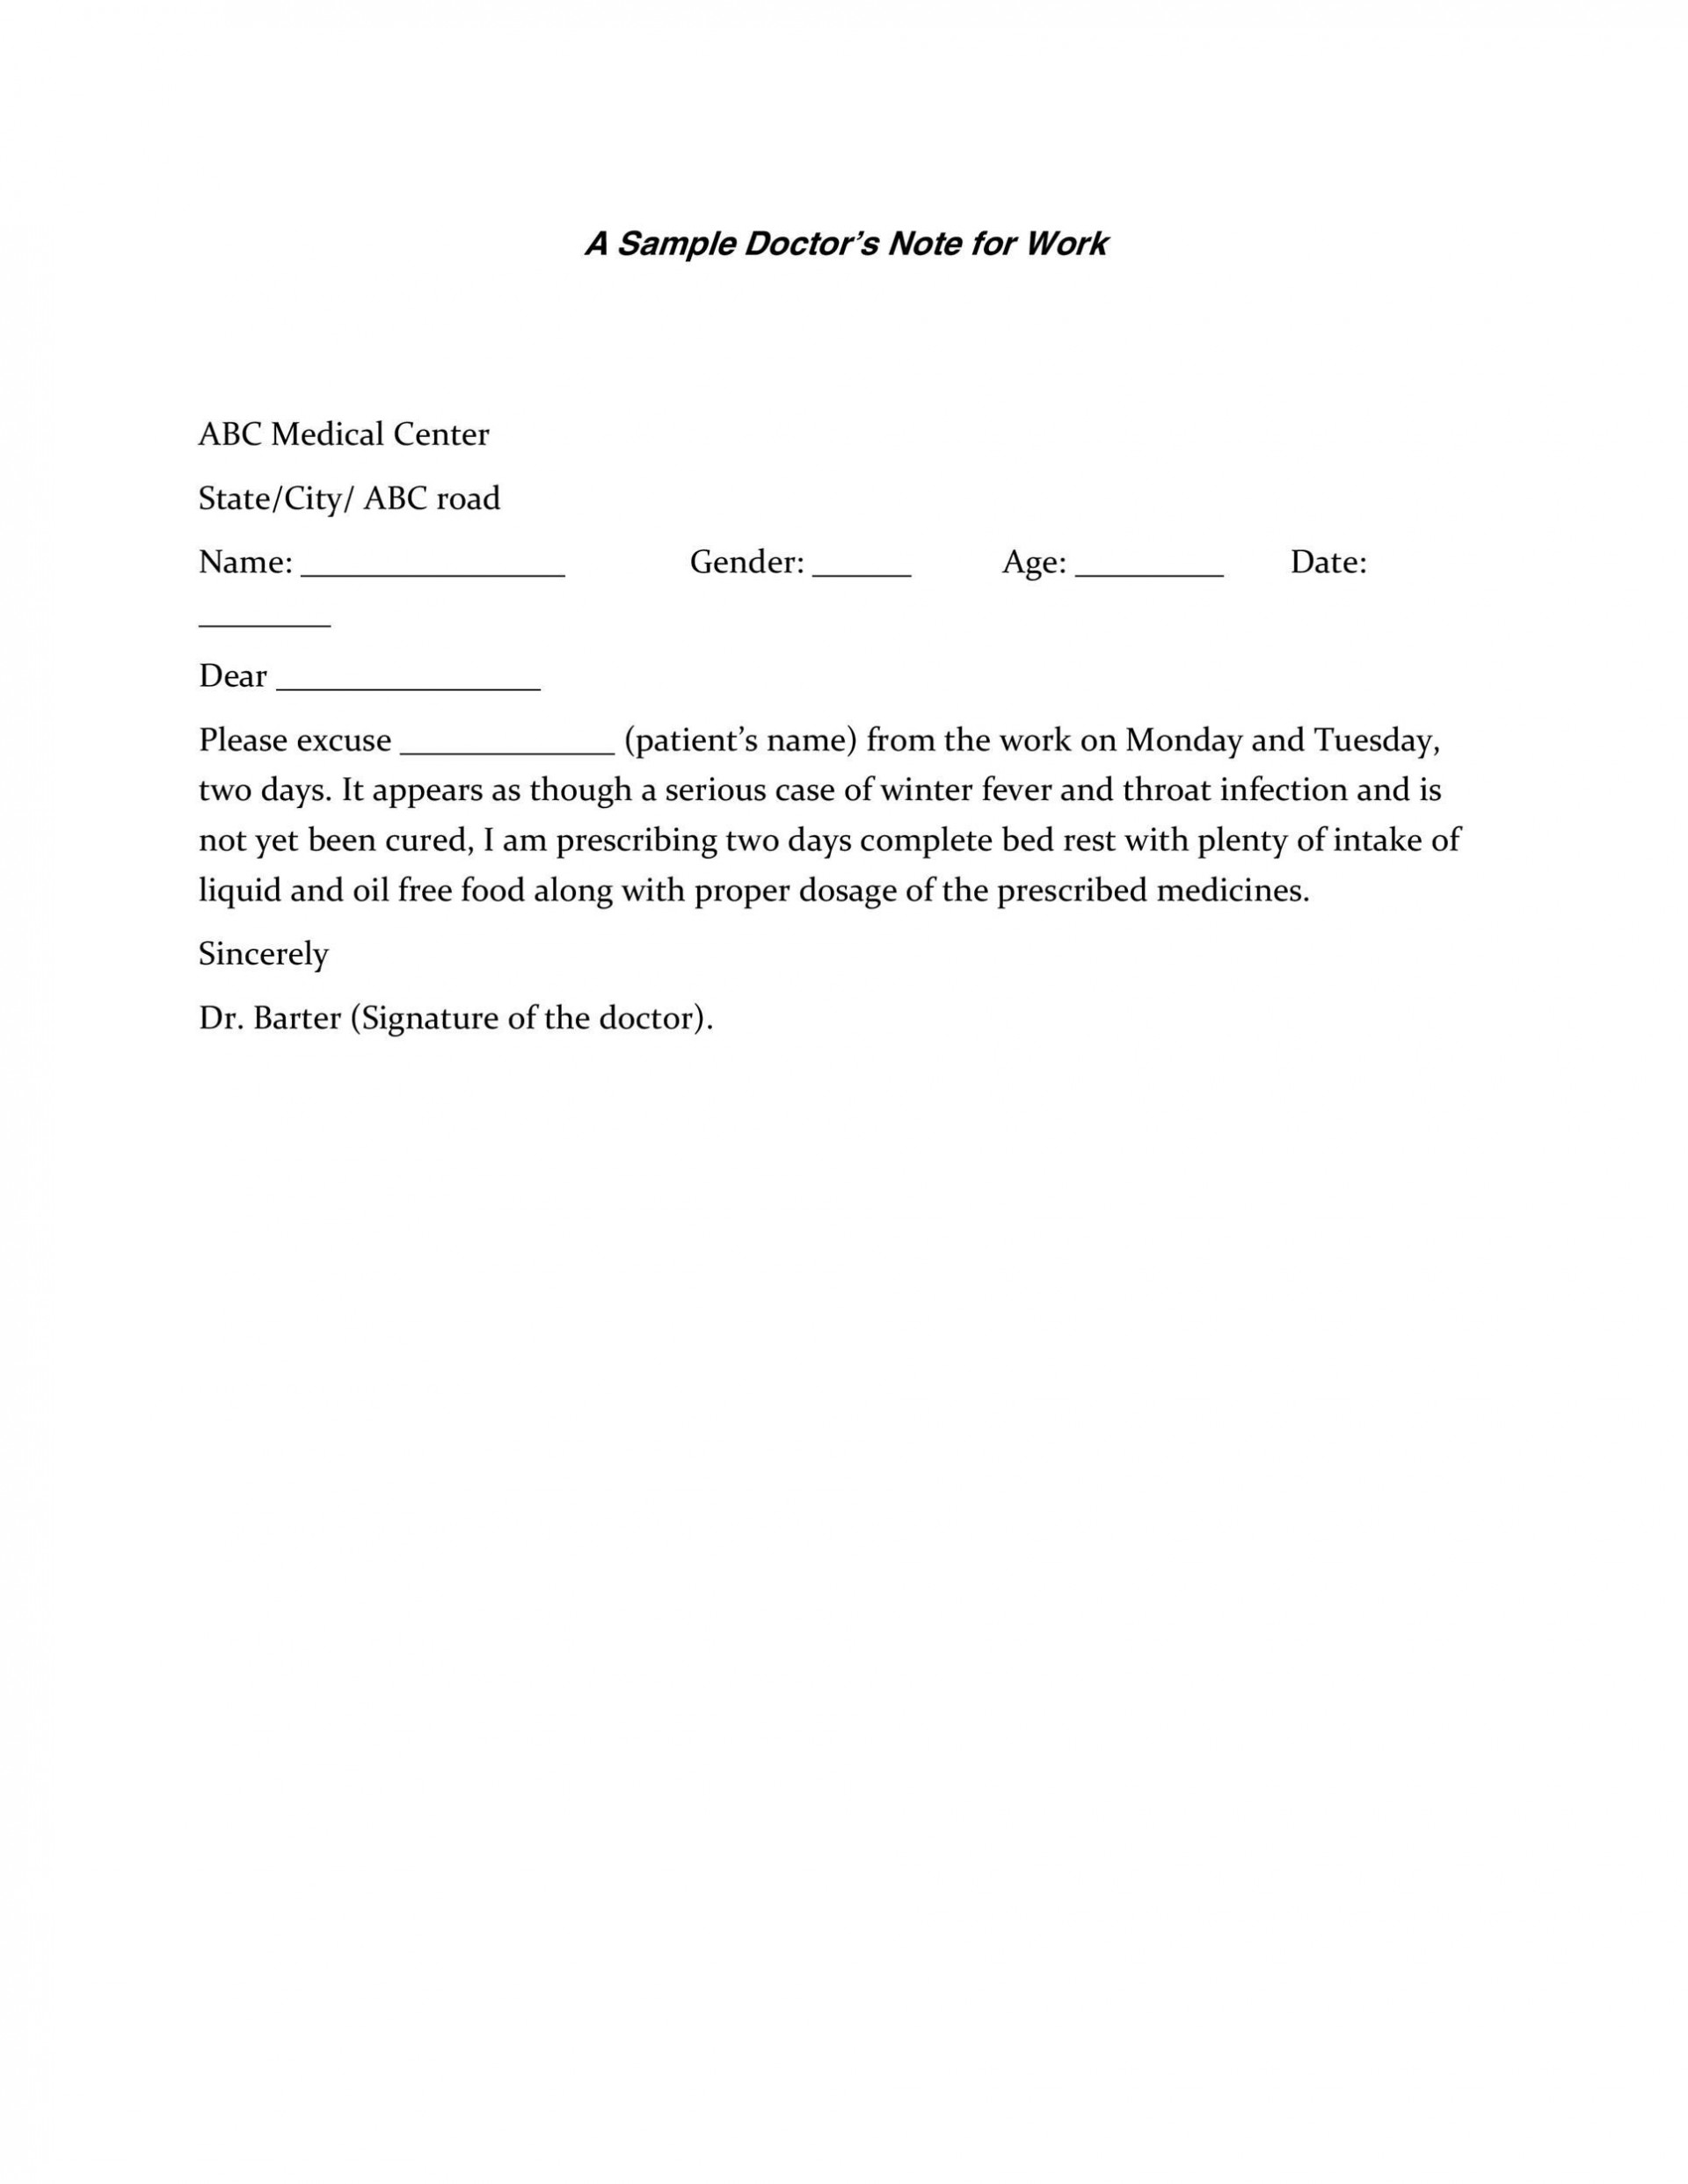 007 Sensational Doctor Note For Work Template Photo  Doctor' Missing Excuse Pdf1920